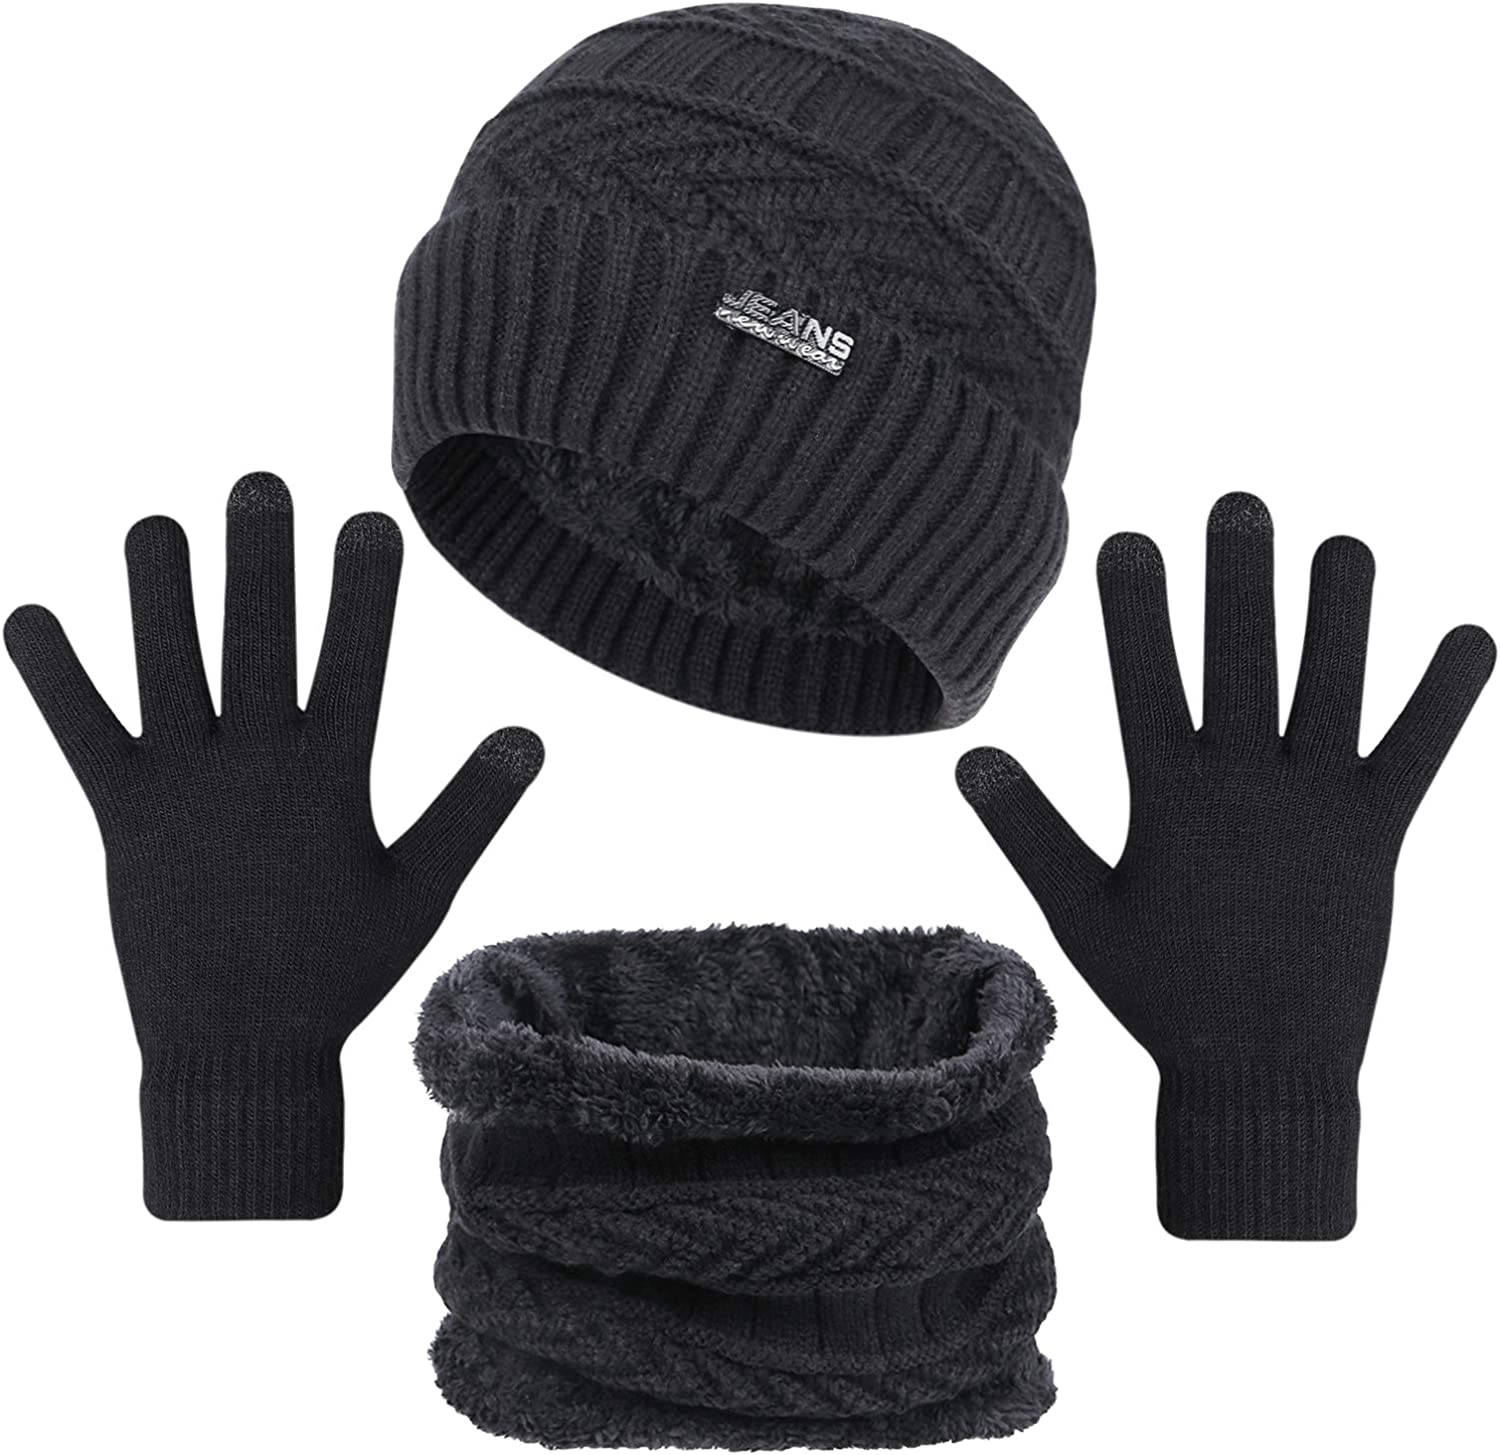 3-Pieces Winter Beanie Hats, Scarf and Touch Screen Gloves Set for Men and Women, Warm Knit Cap Set